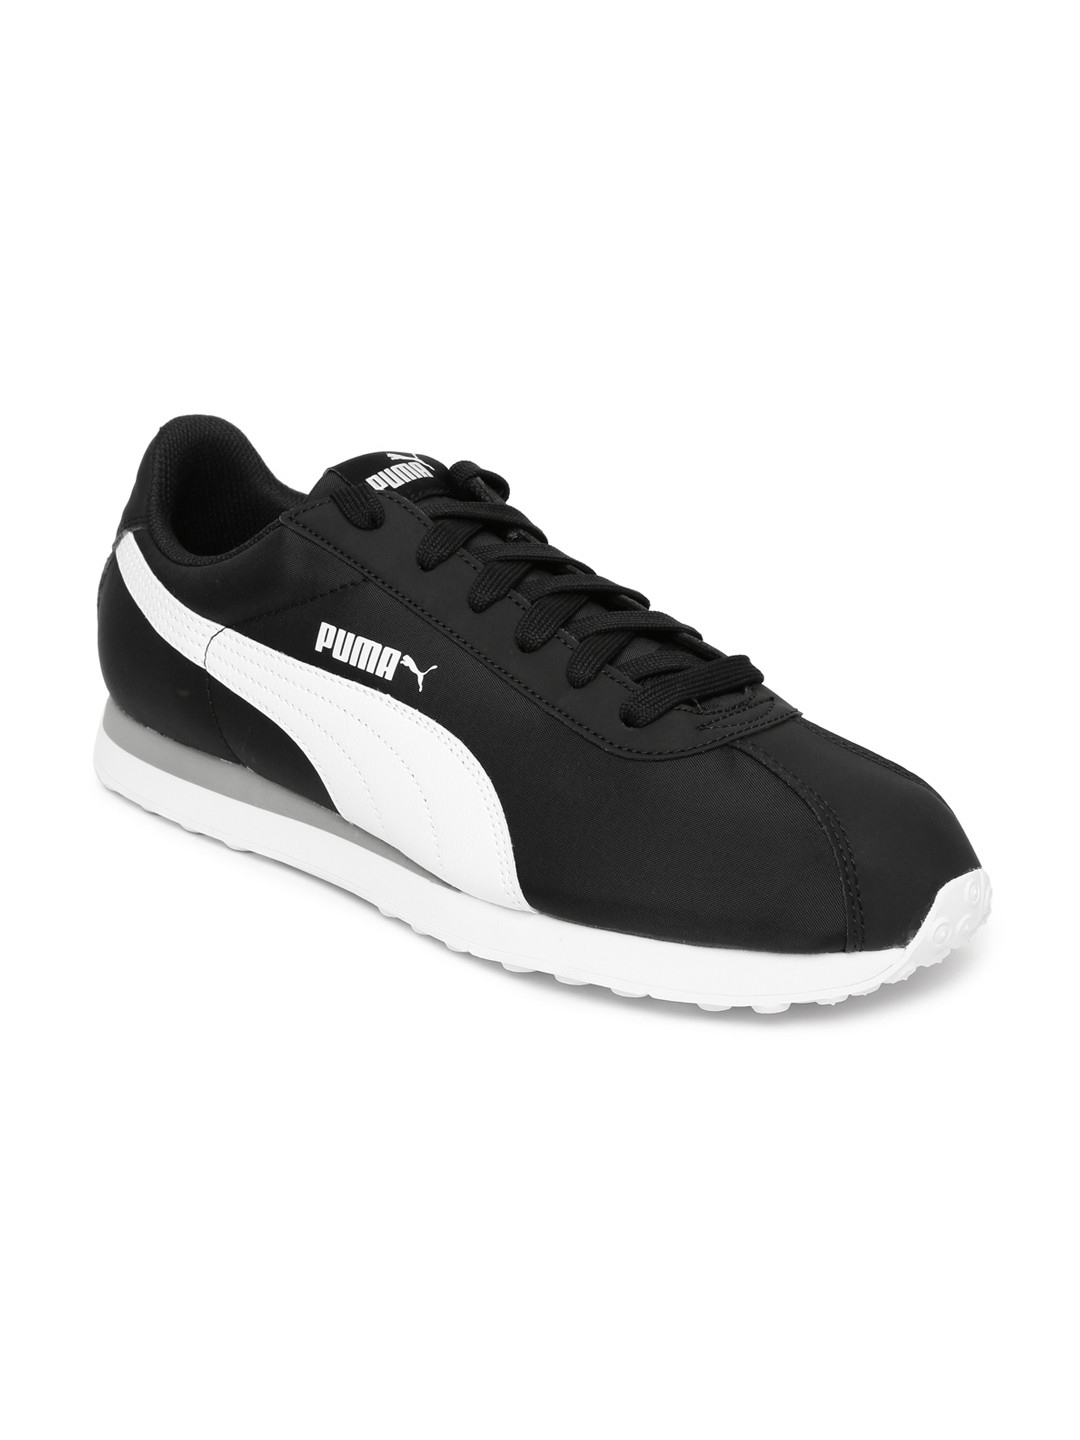 Buy Puma Unisex Black TURIN NL Solid Sneakers - Casual Shoes for ... 1b1fb1ae8